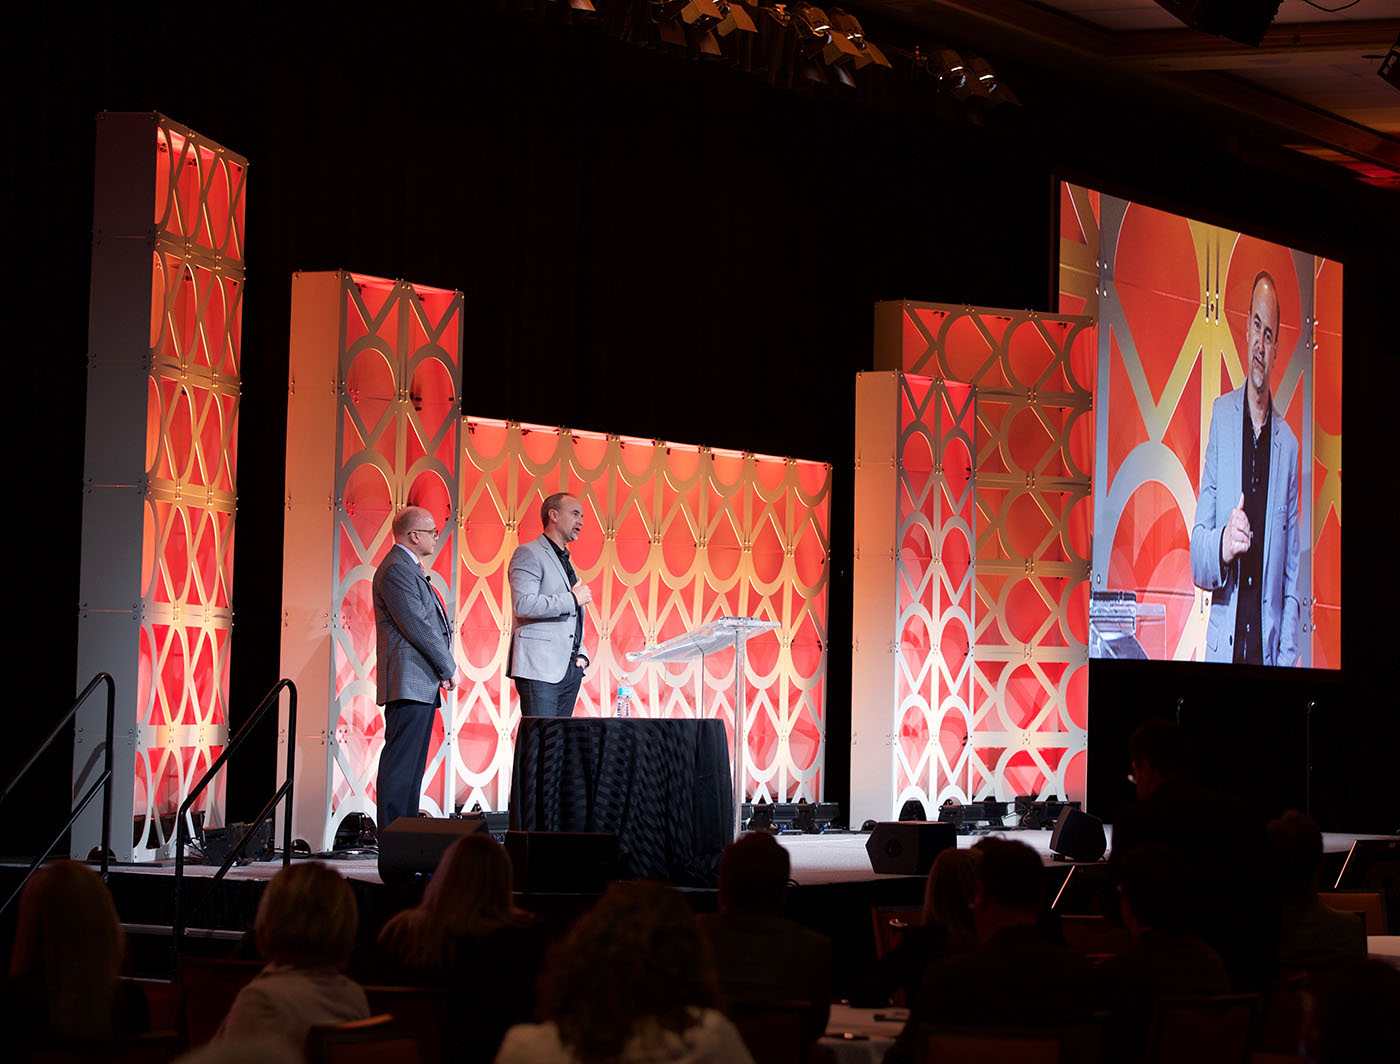 OM SuperWall at IEG Conference